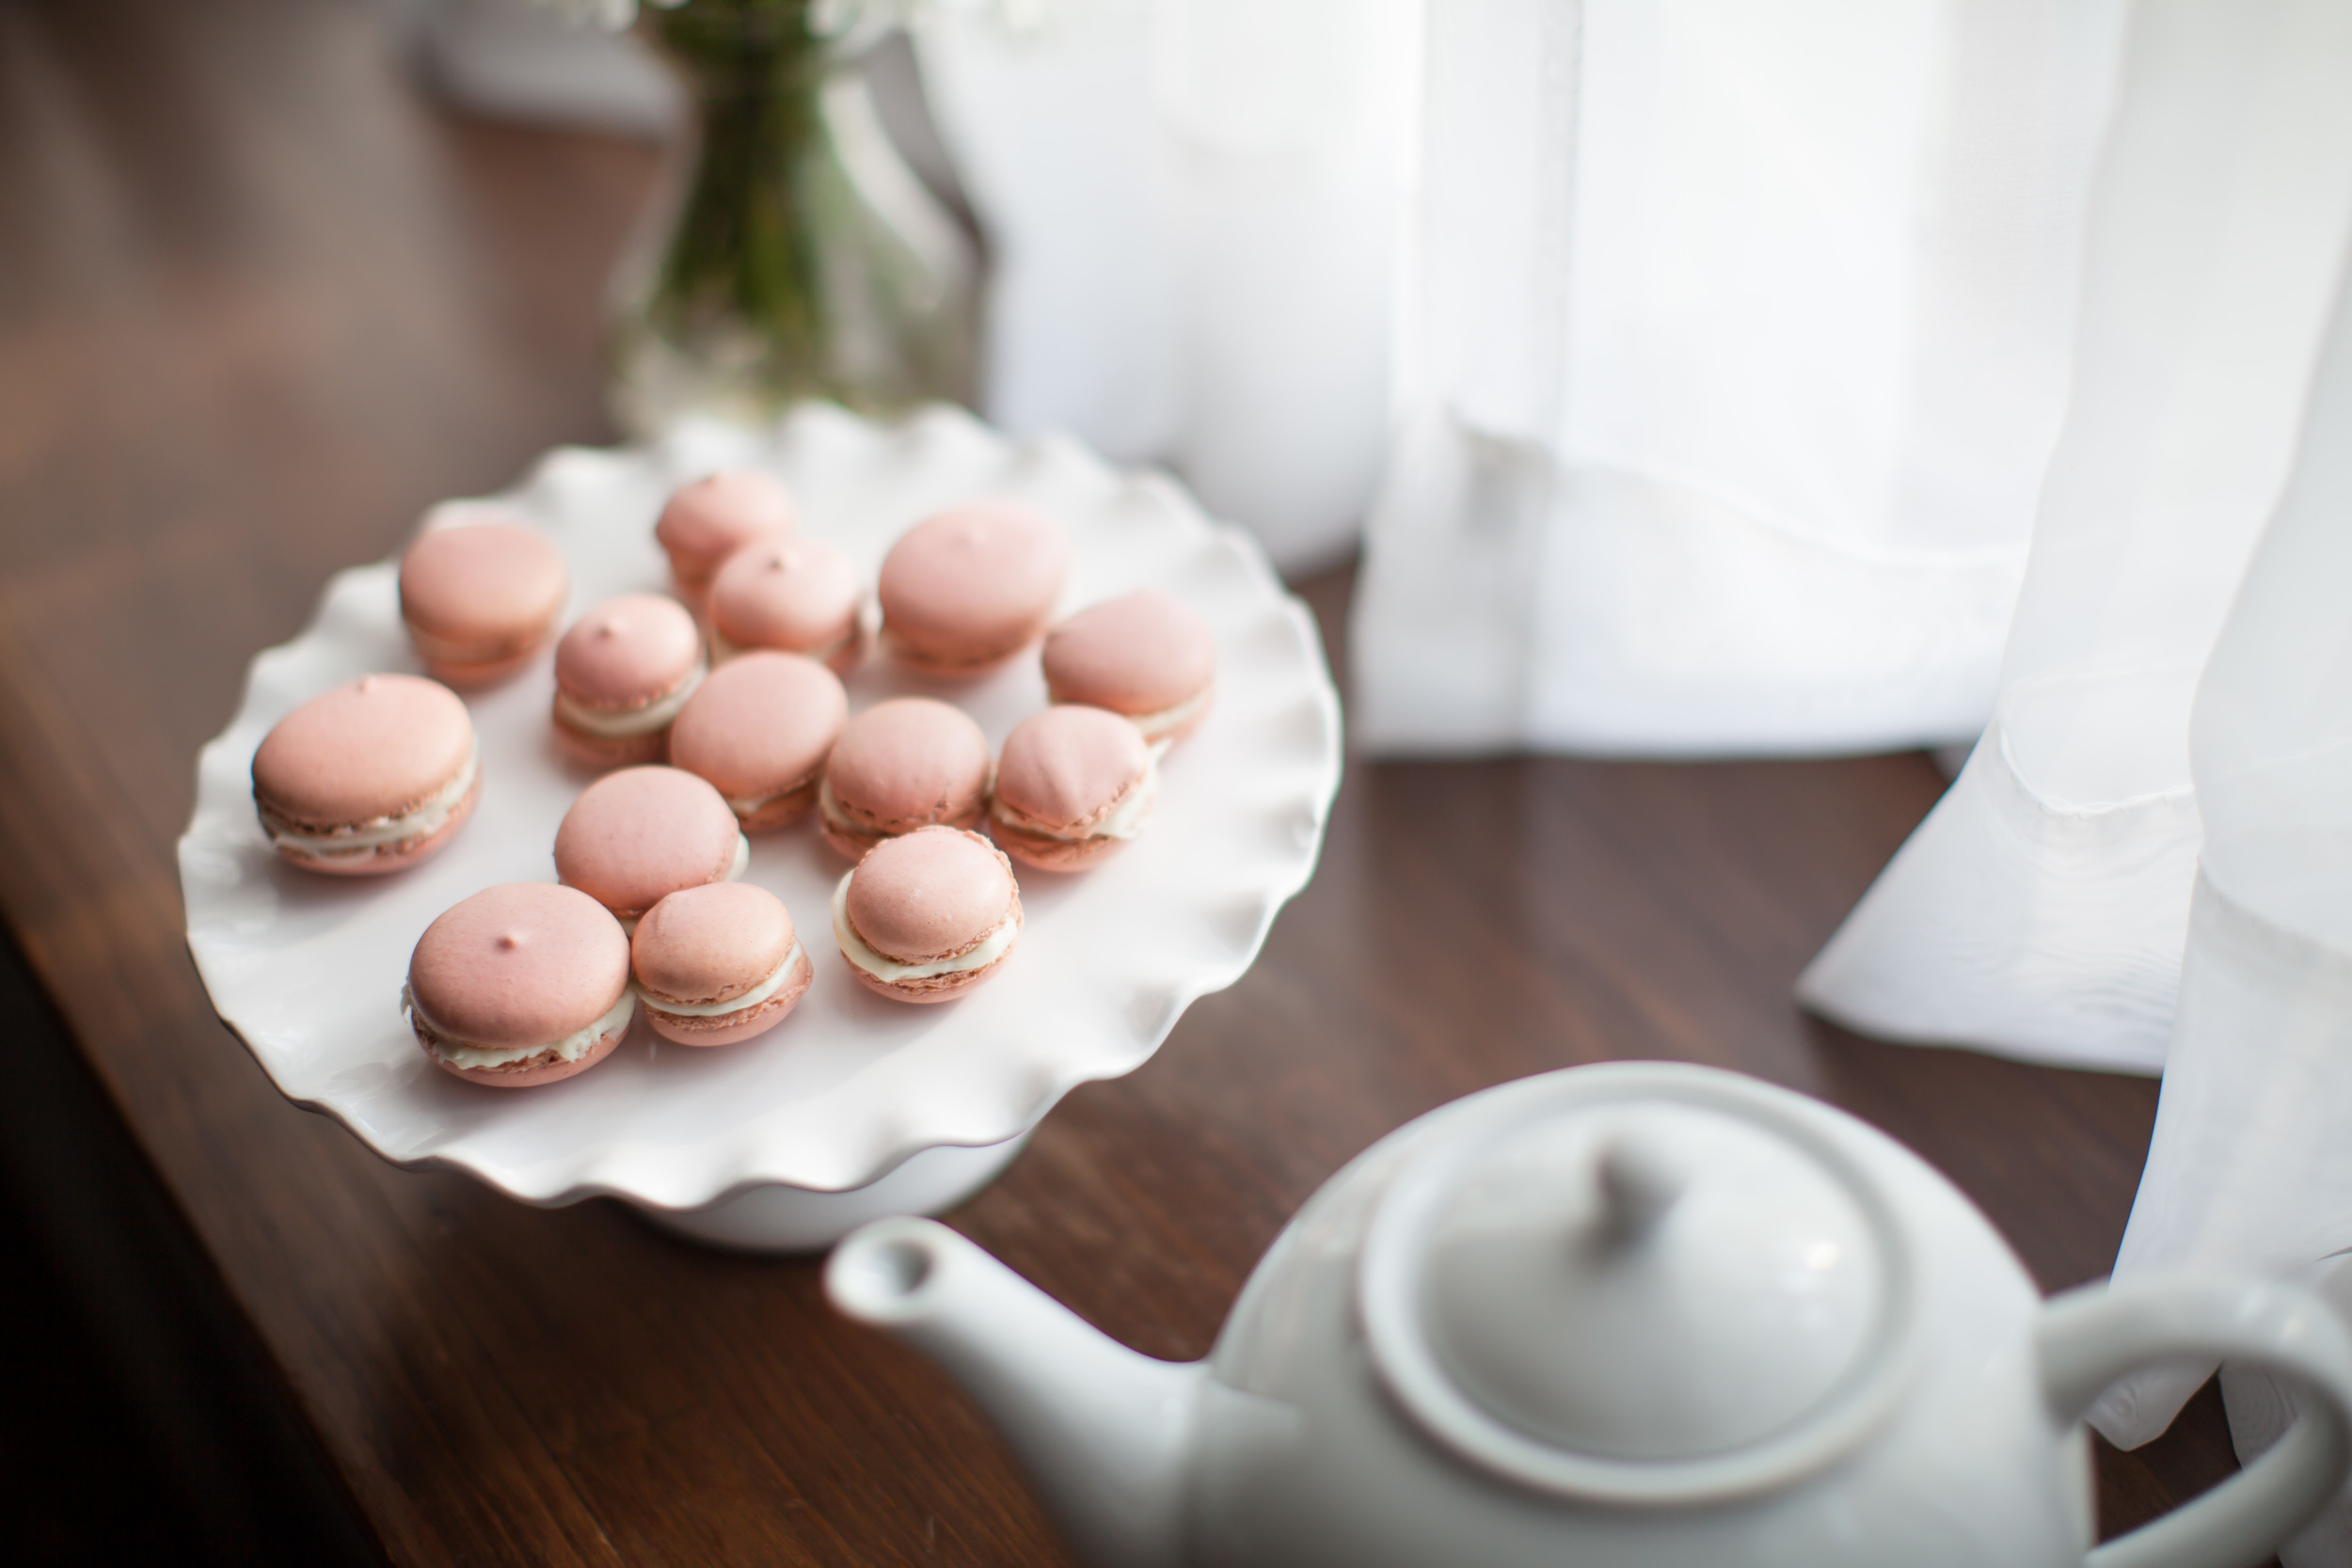 Homemade french macaroons.